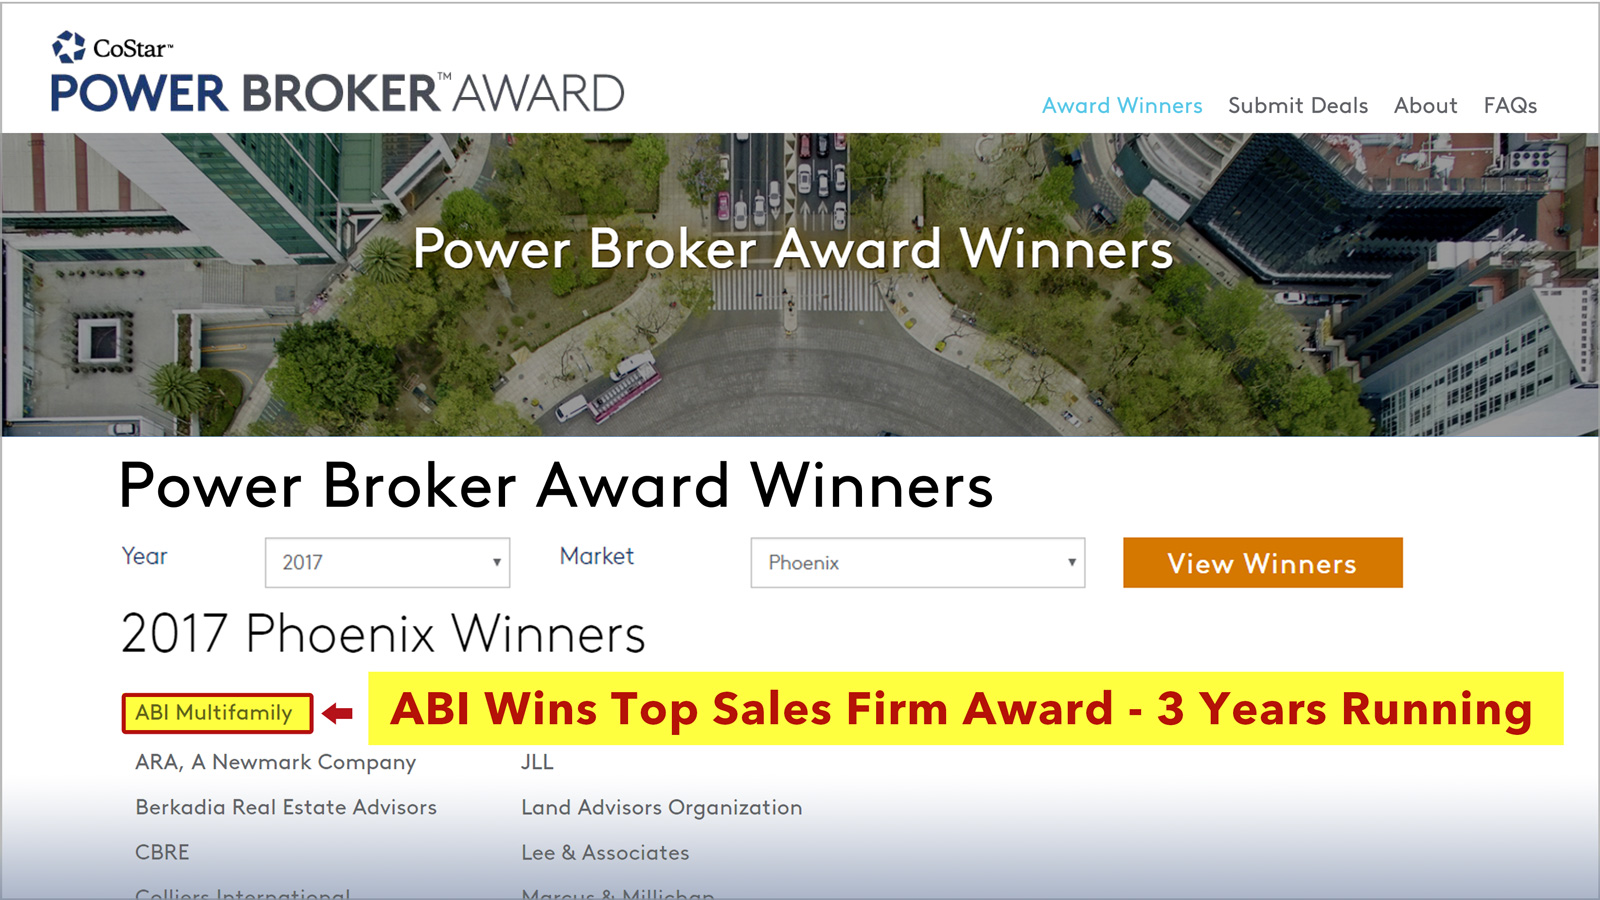 CoStar-Power-Broker-Awards---2017-Award-Winners---ABI-Multifamily1600-900